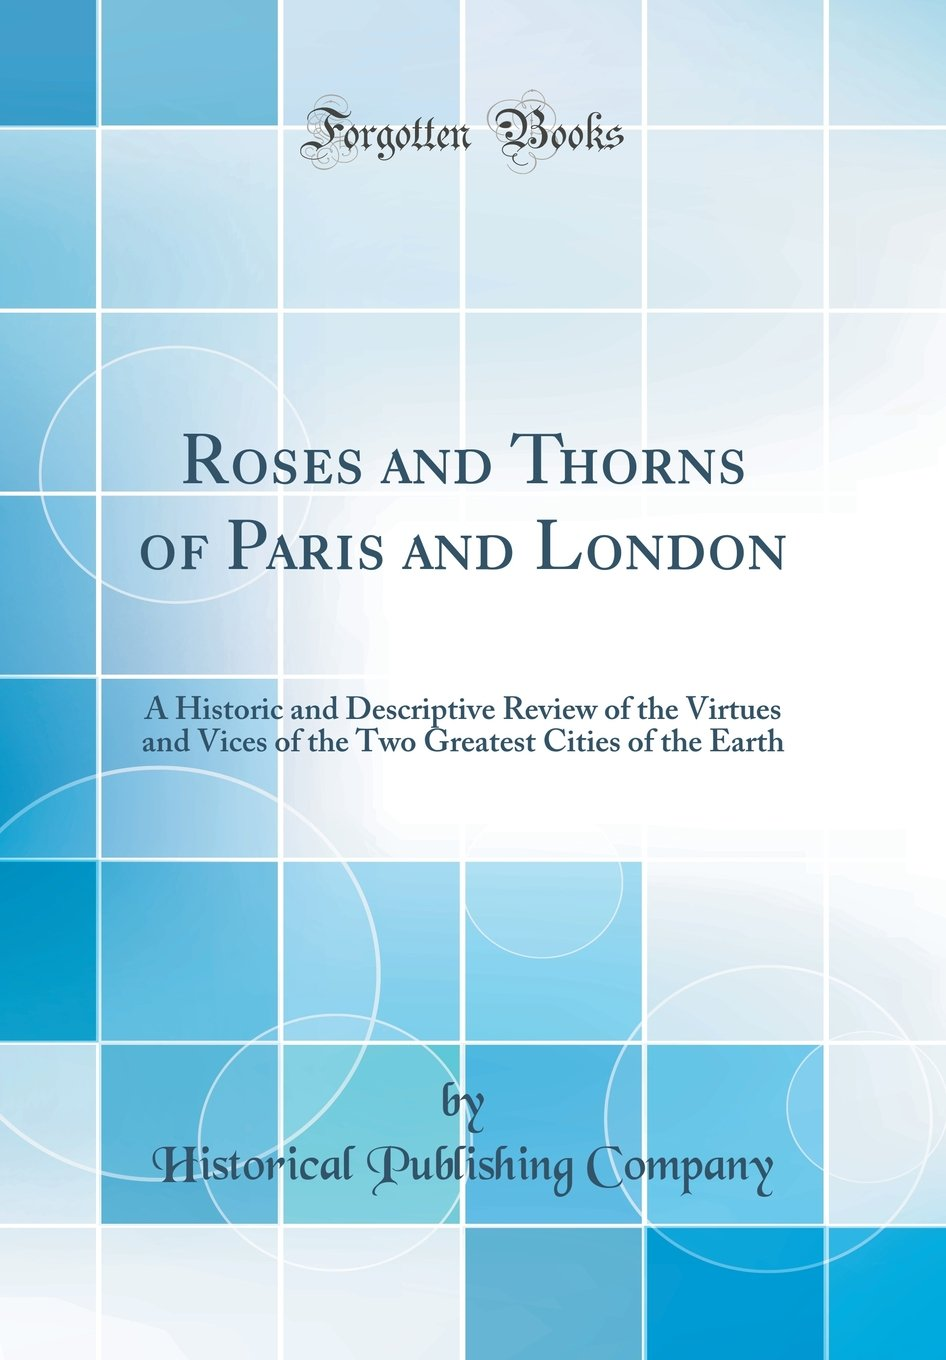 Download Roses and Thorns of Paris and London: A Historic and Descriptive Review of the Virtues and Vices of the Two Greatest Cities of the Earth (Classic Reprint) ebook